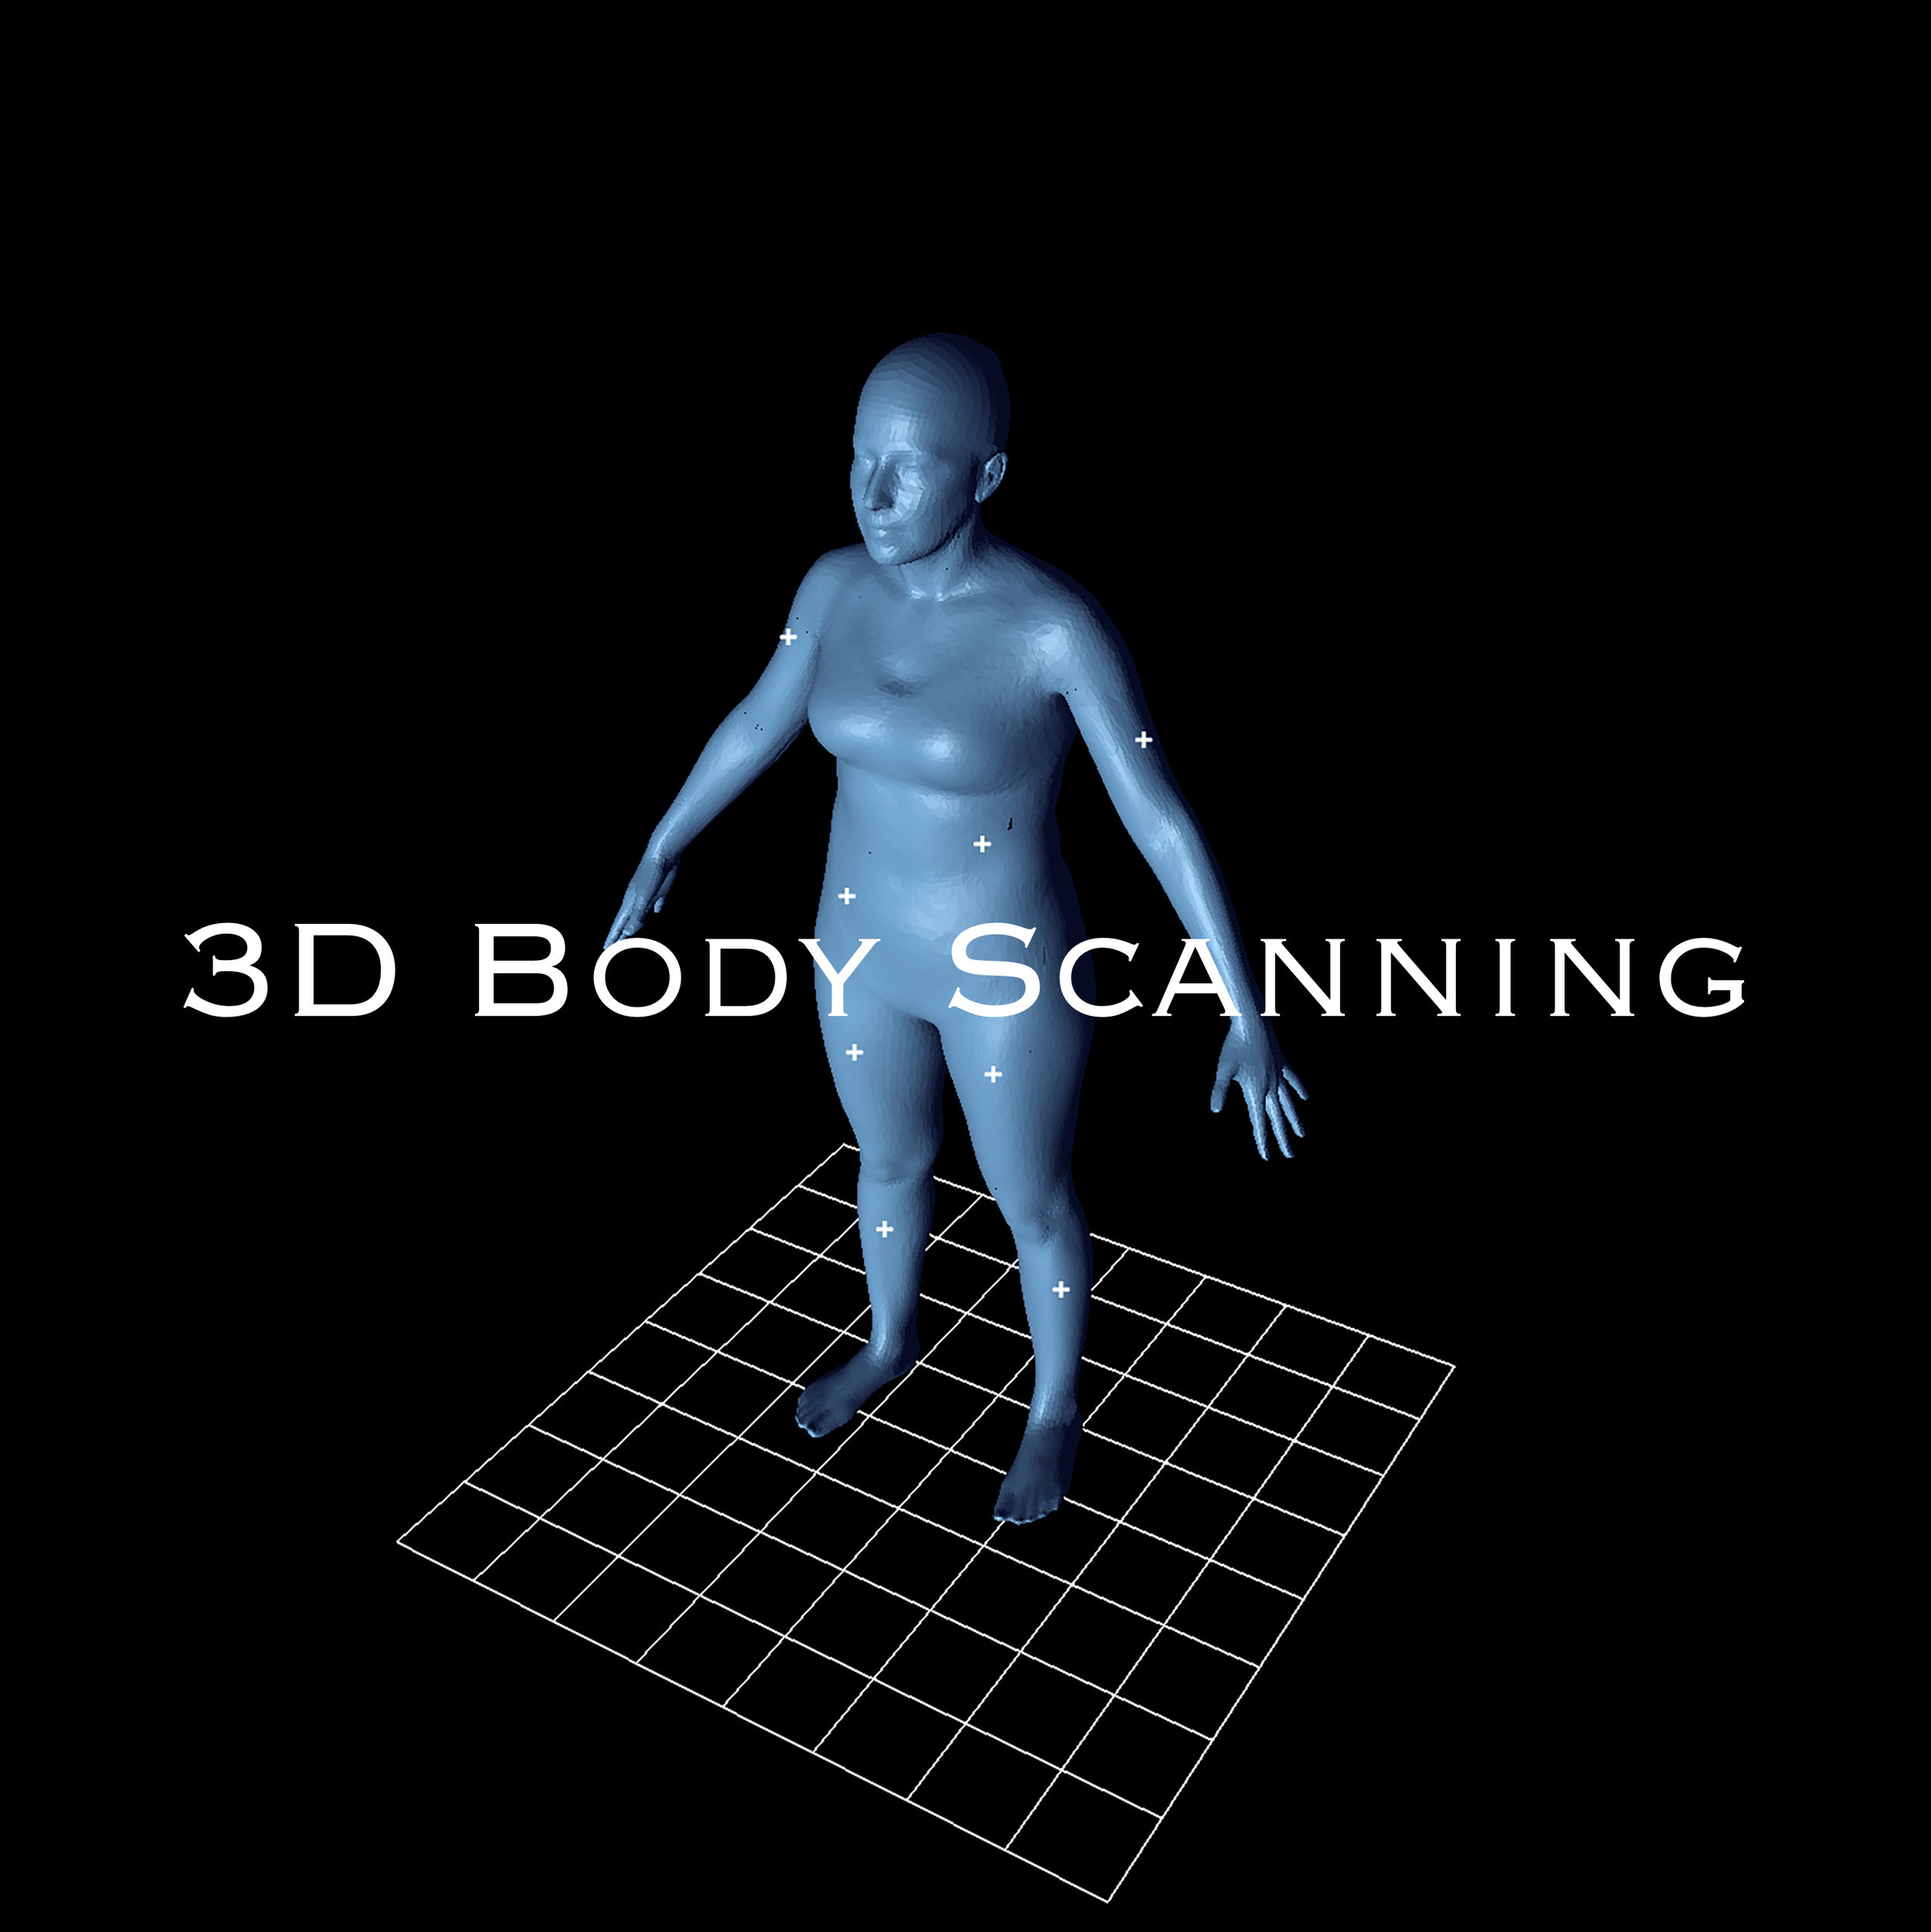 3D Body Scanning by Fitnescity